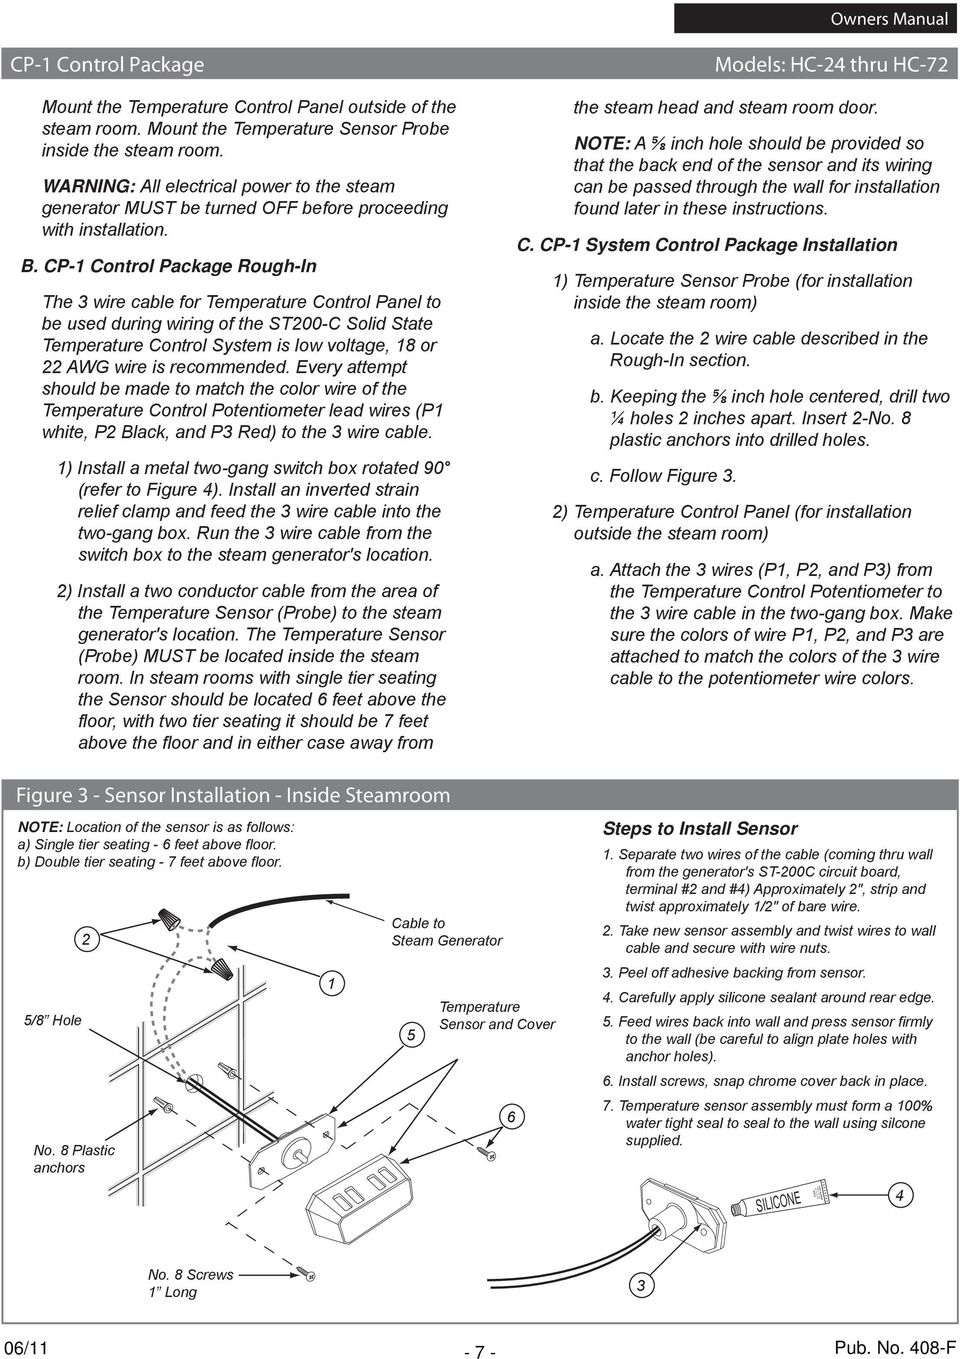 Potentiometer Wiring Red Black White Trusted Schematics Diagram Light Fixture 2 Owners Manual Pub No 408 F Pdf With Wire